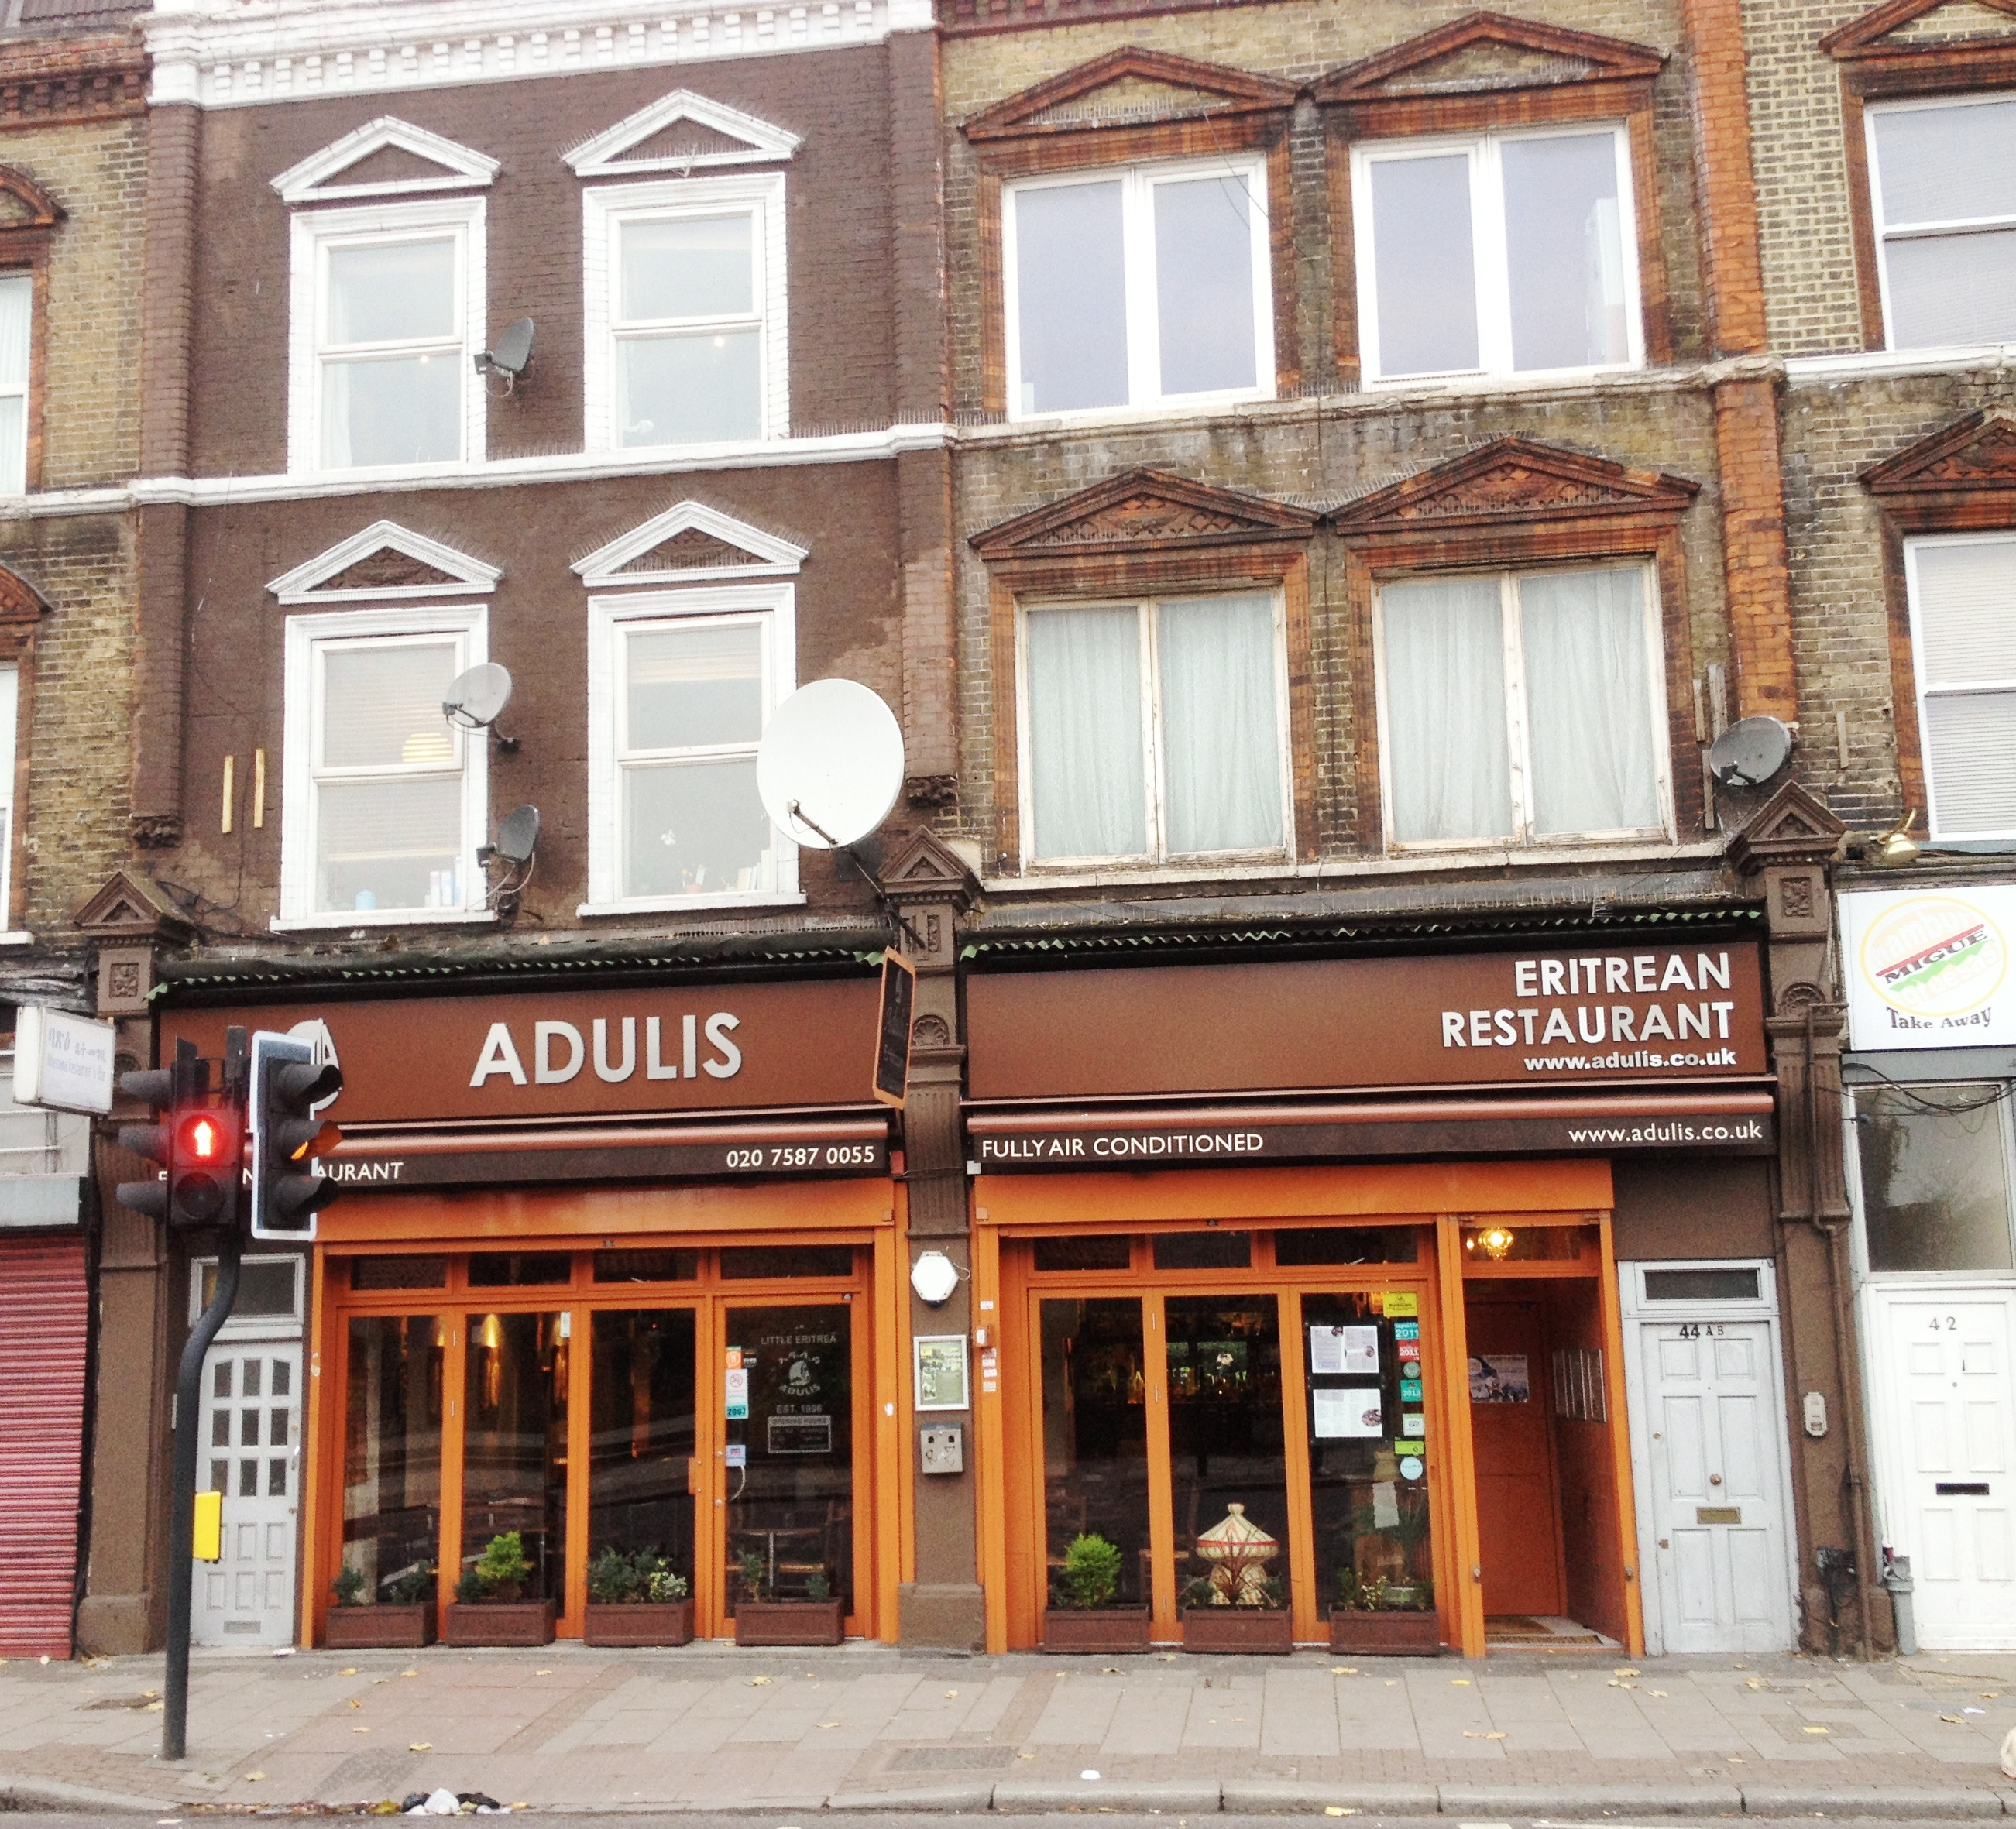 Adulis Eritrean Restaurant - kenningtonrunoff.com